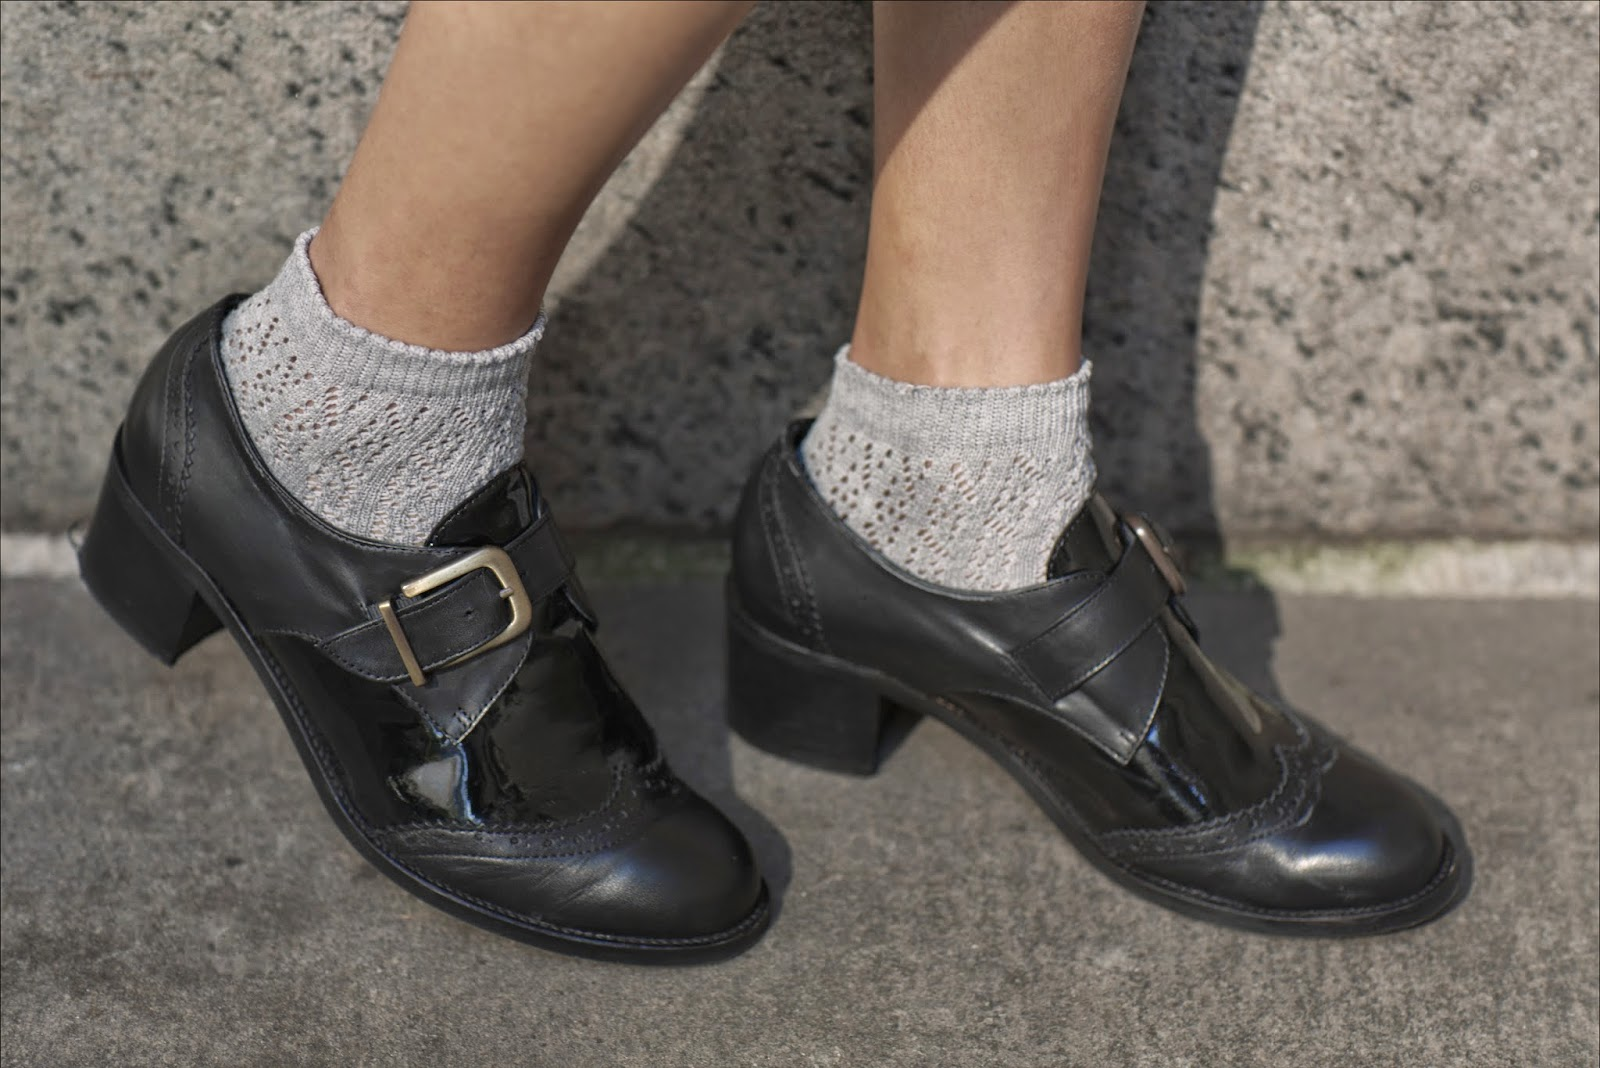 City Laundry: Summer: Duo Shoes Giveaway!